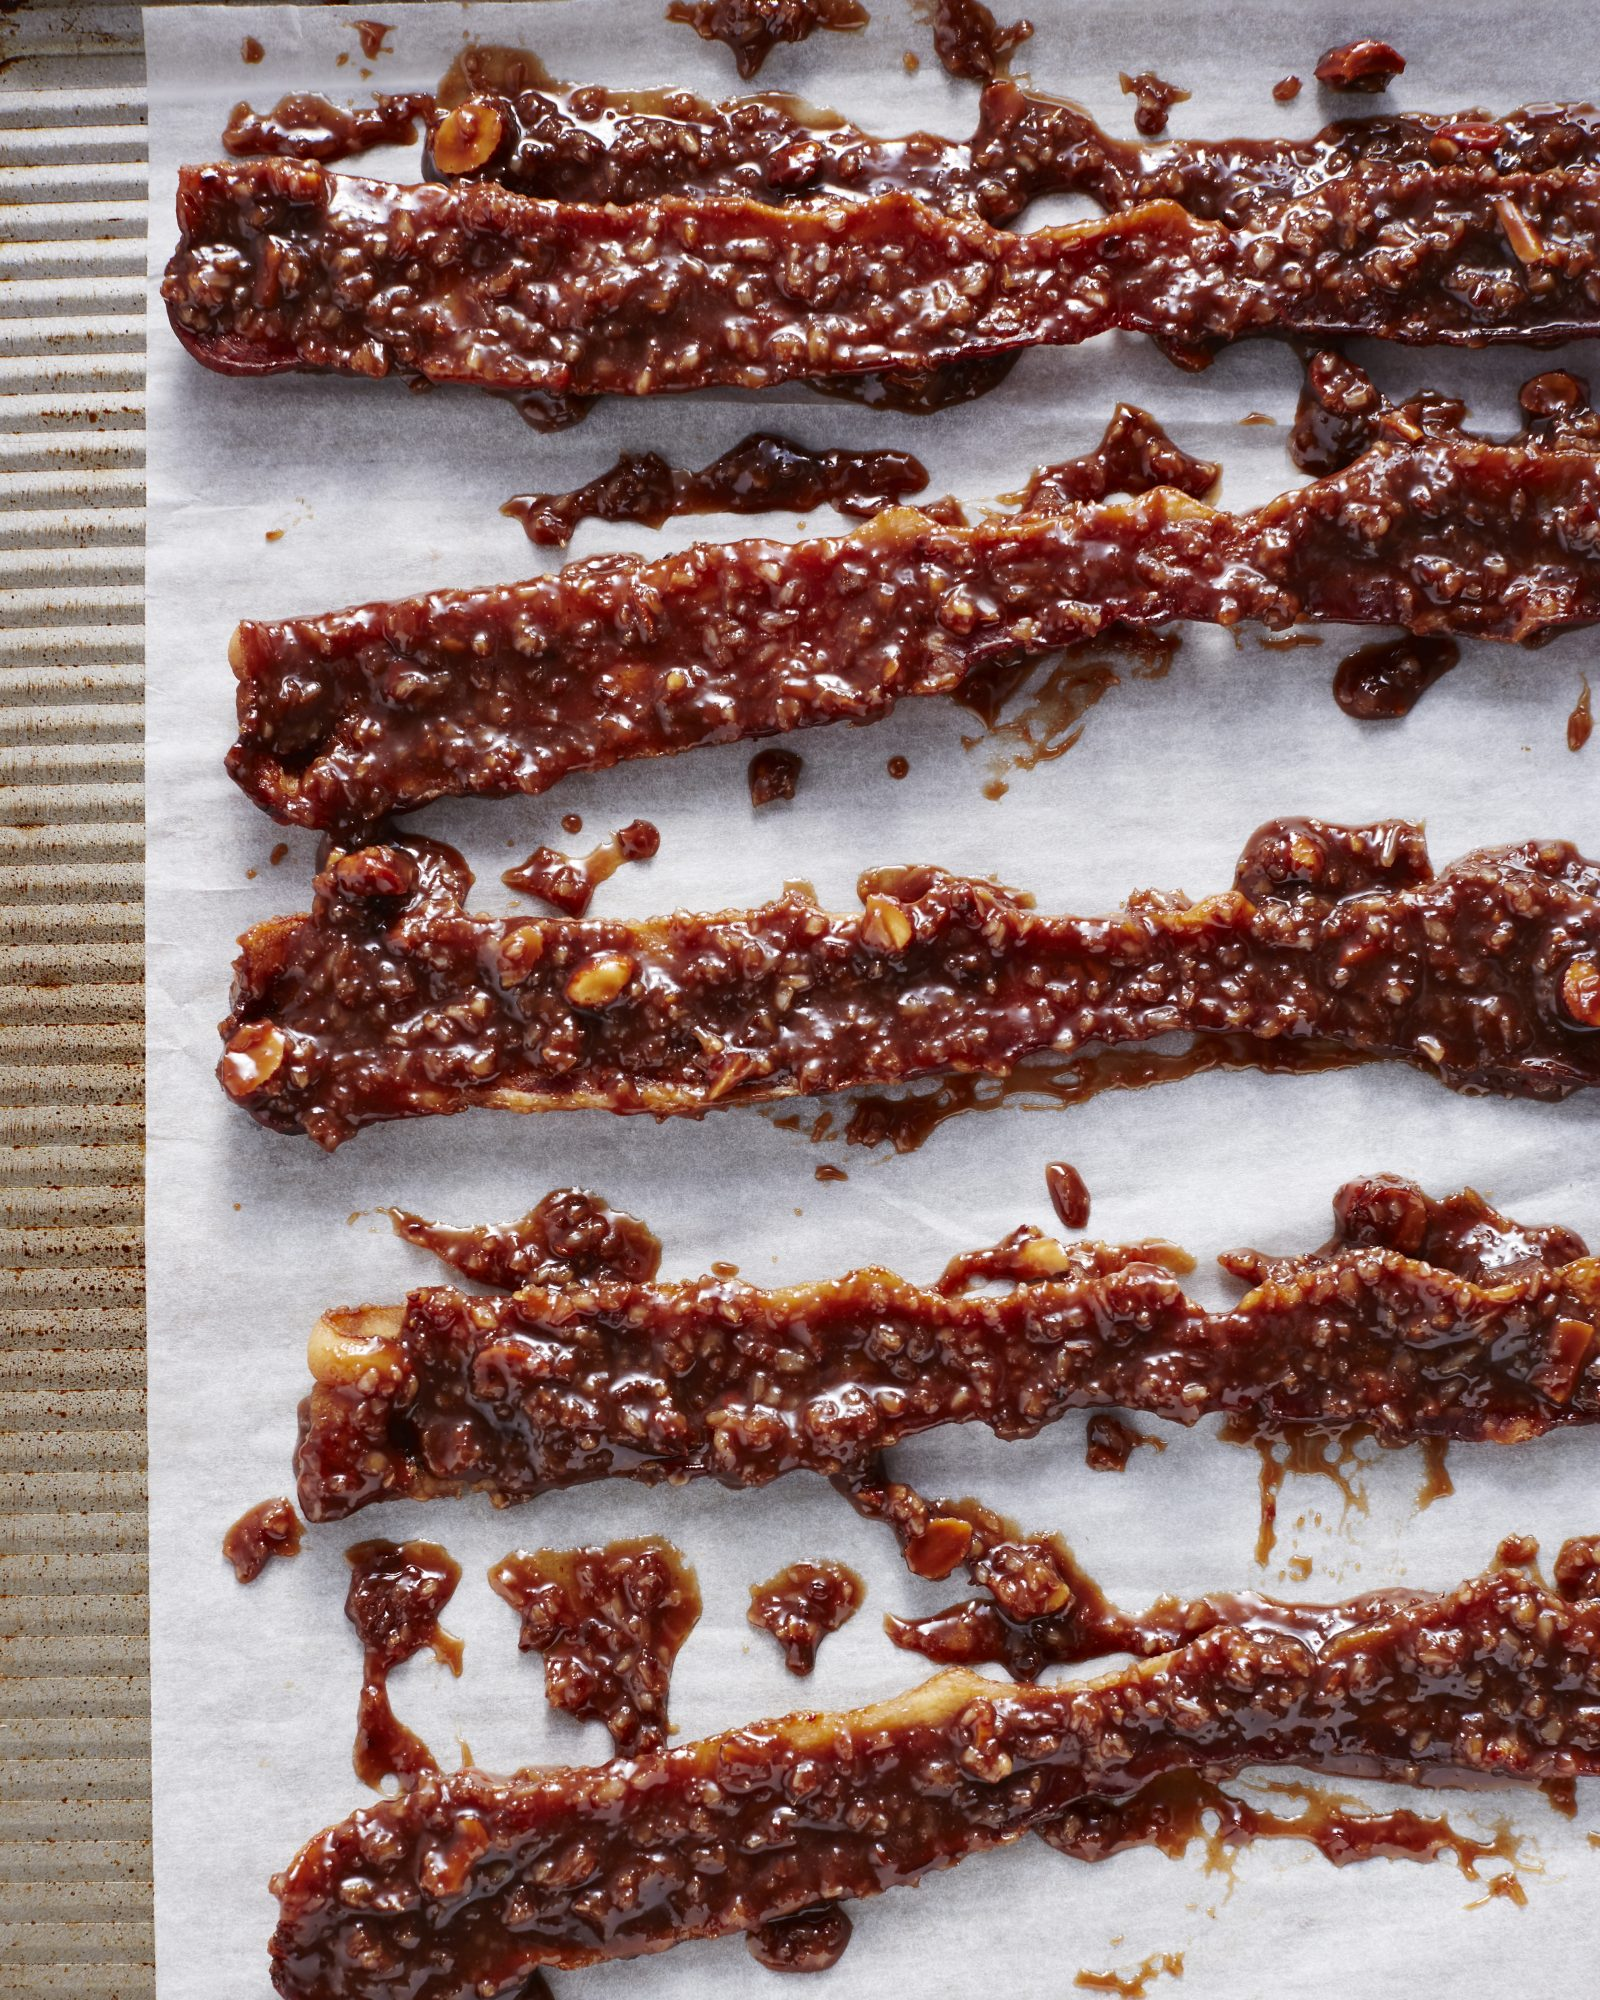 Almond Joy Candied Bacon